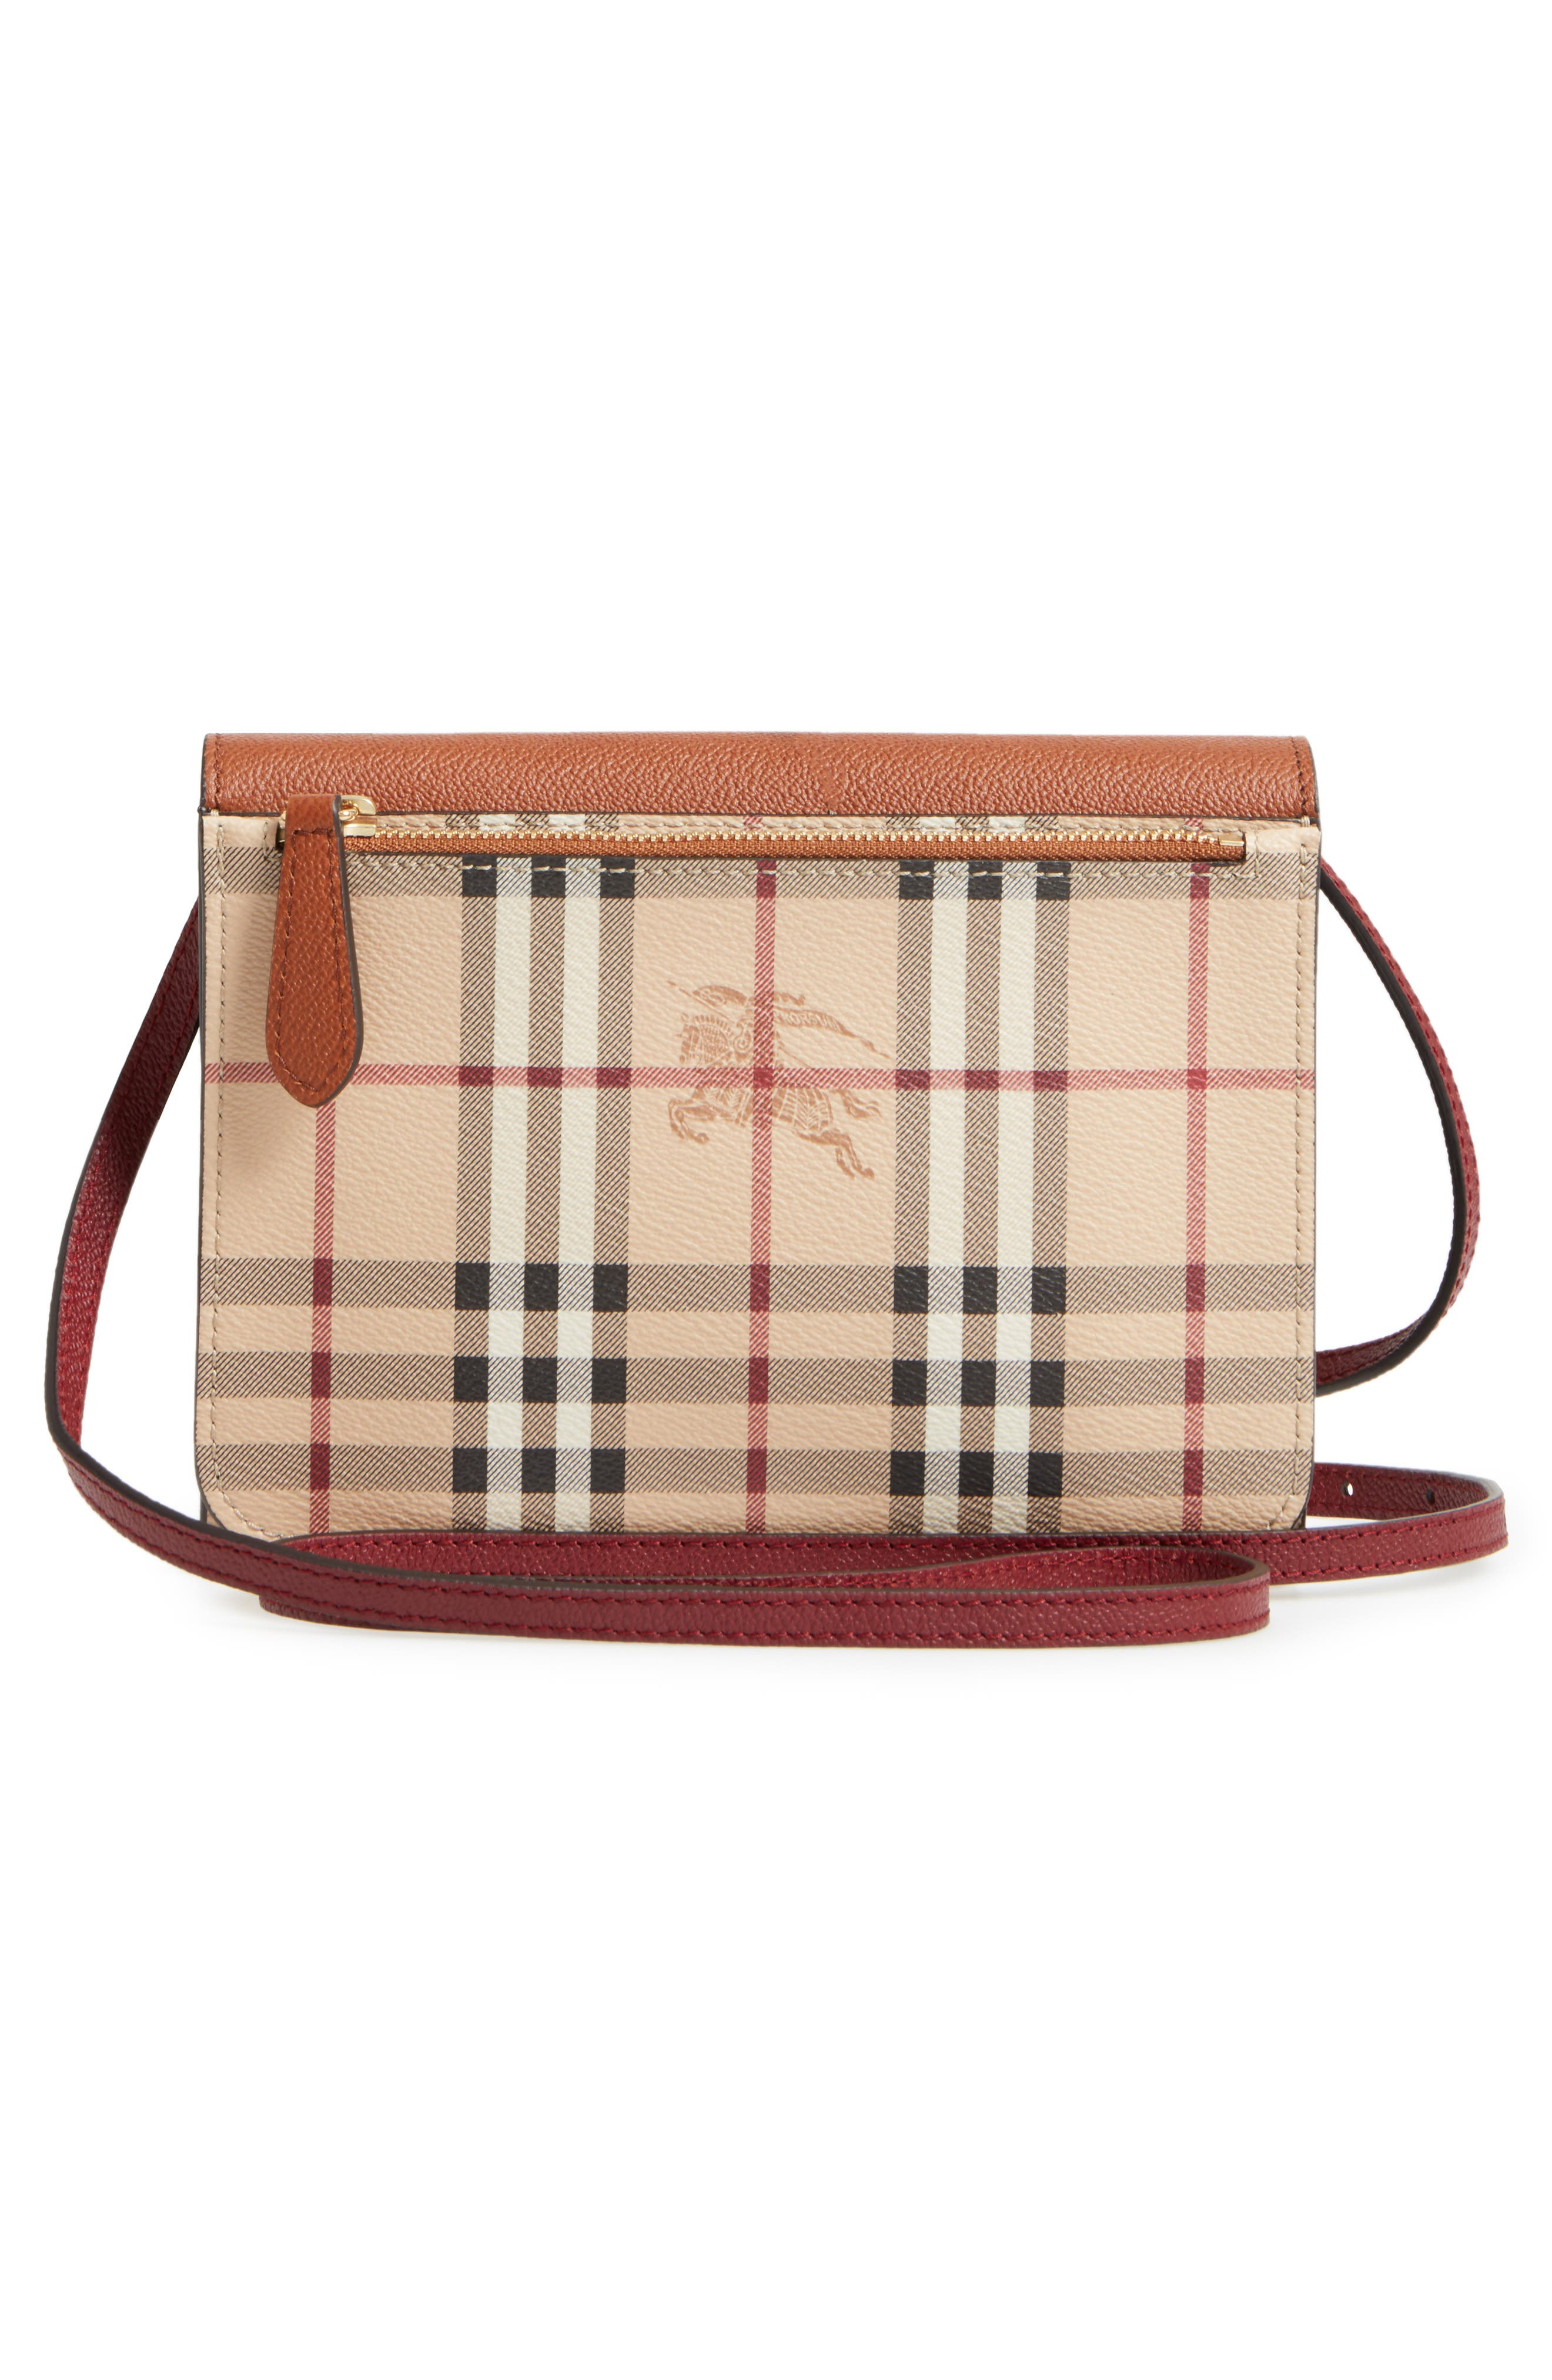 Peyton Check Coated Canvas & Leather Crossbody Bag,                             Alternate thumbnail 3, color,                             265